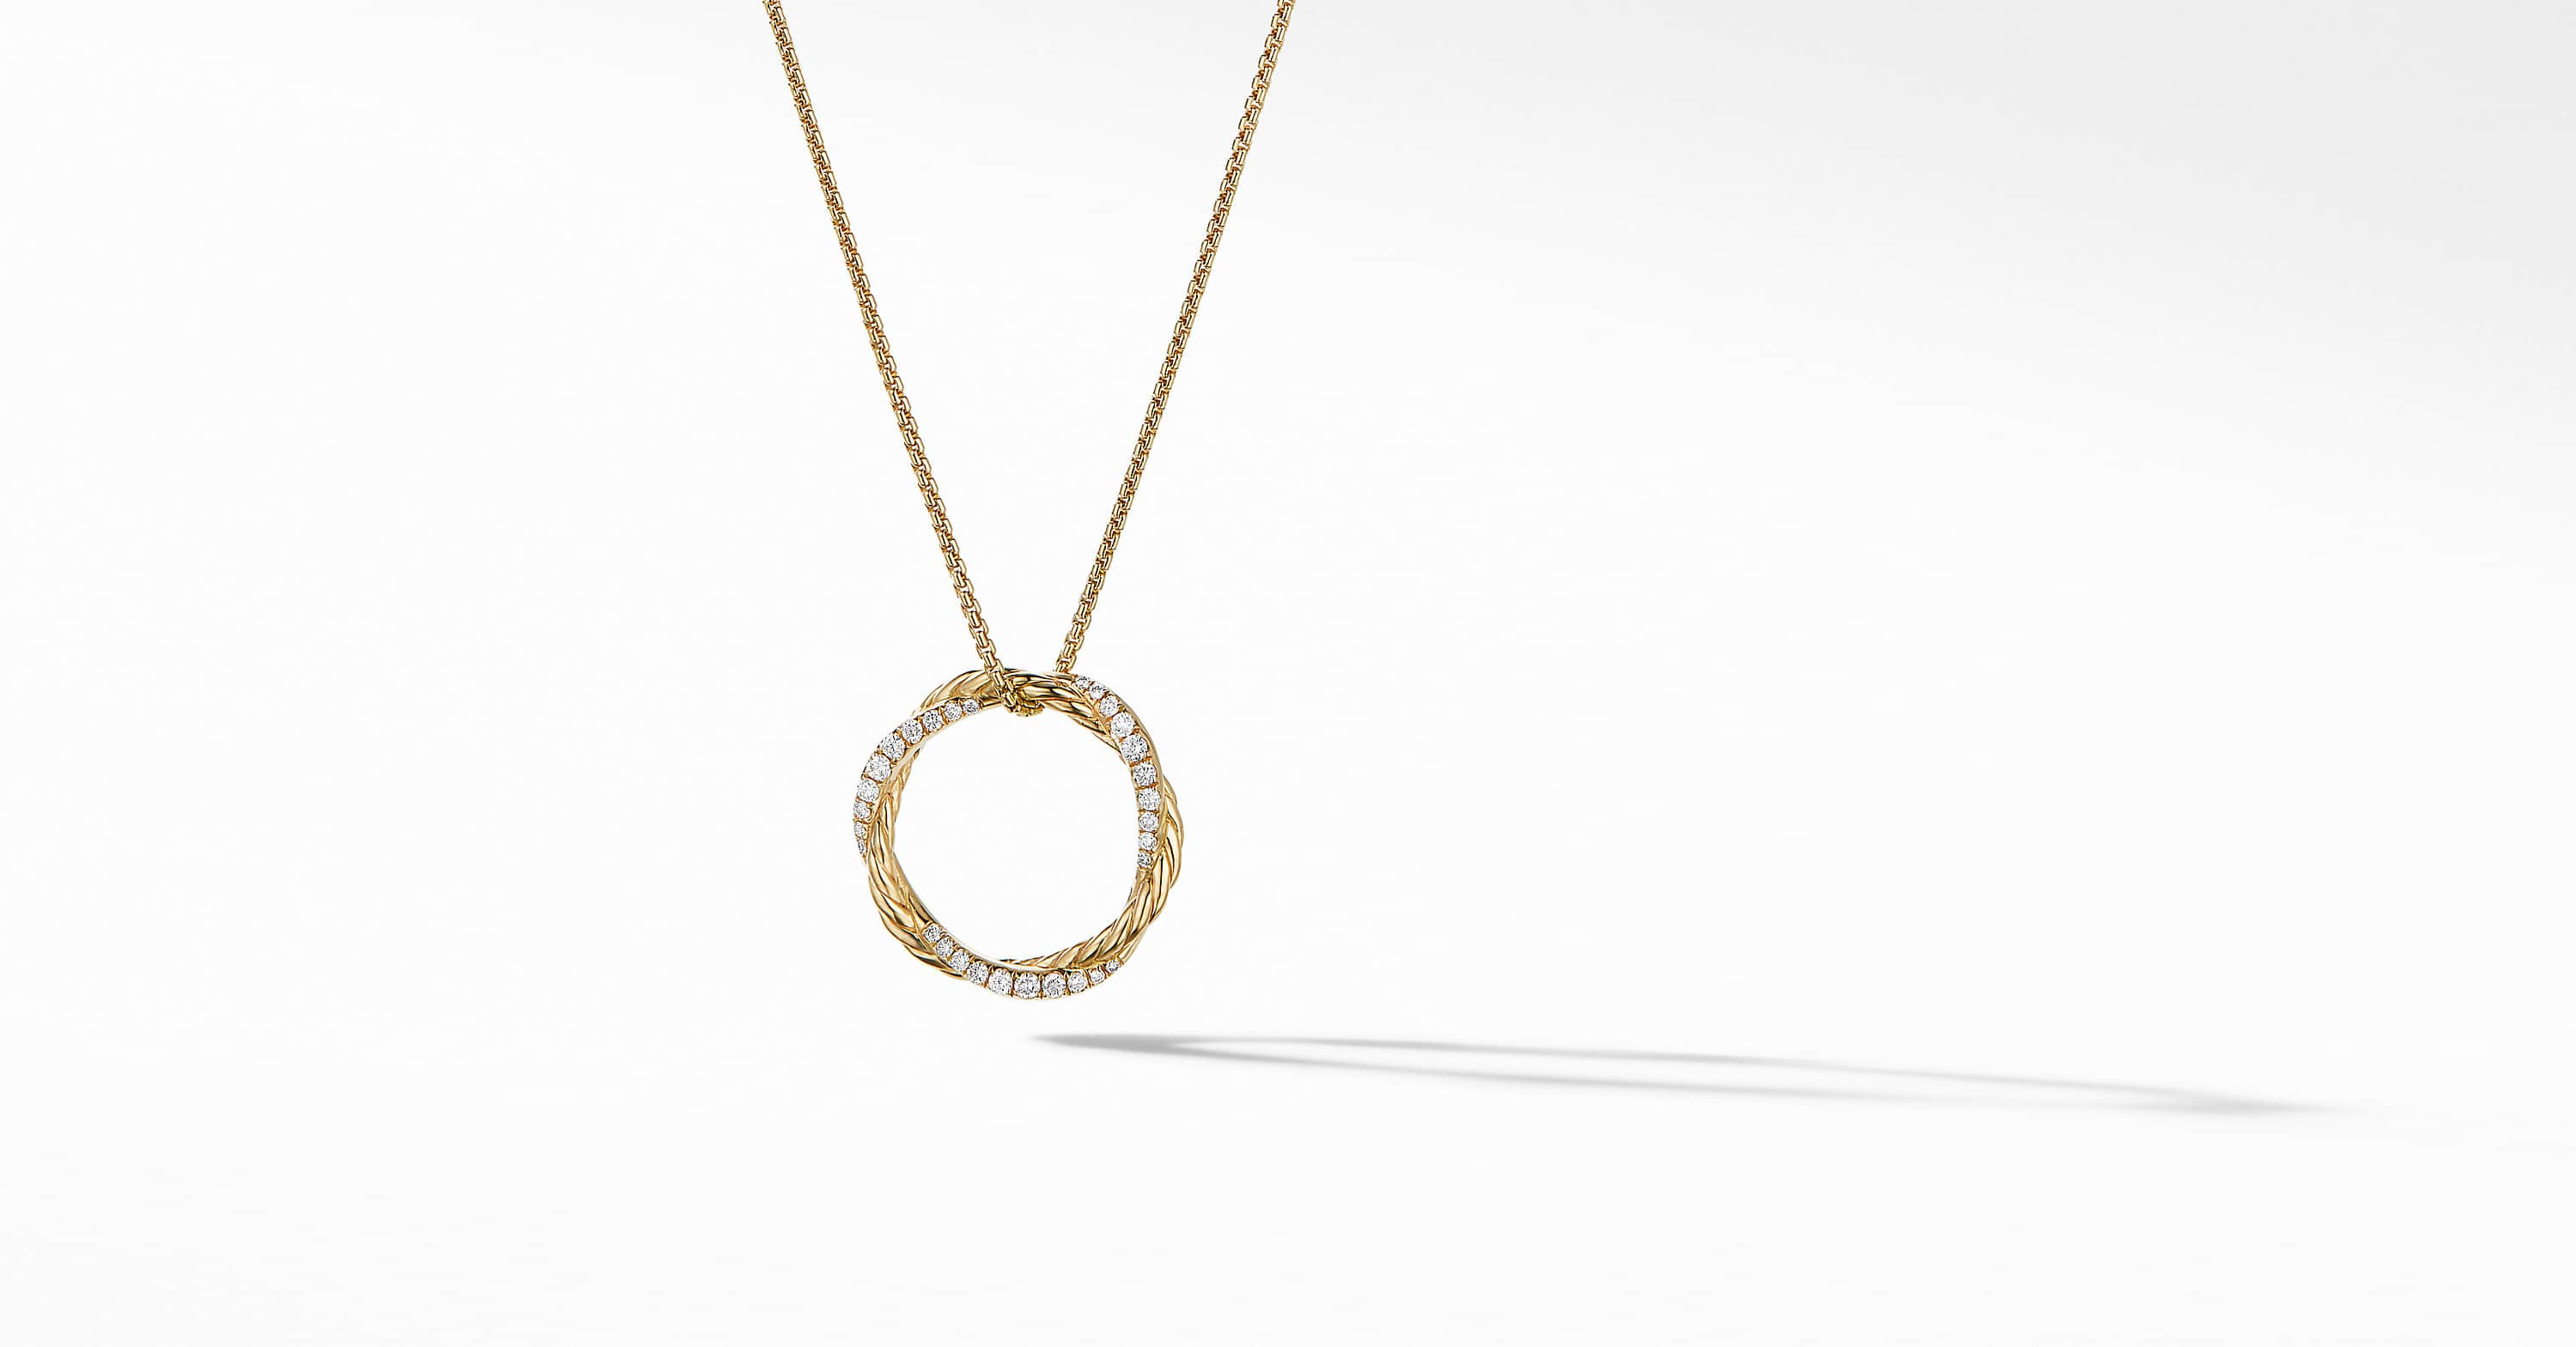 Petite Infinity Necklace in 18K Yellow Gold with Diamonds, 18mm